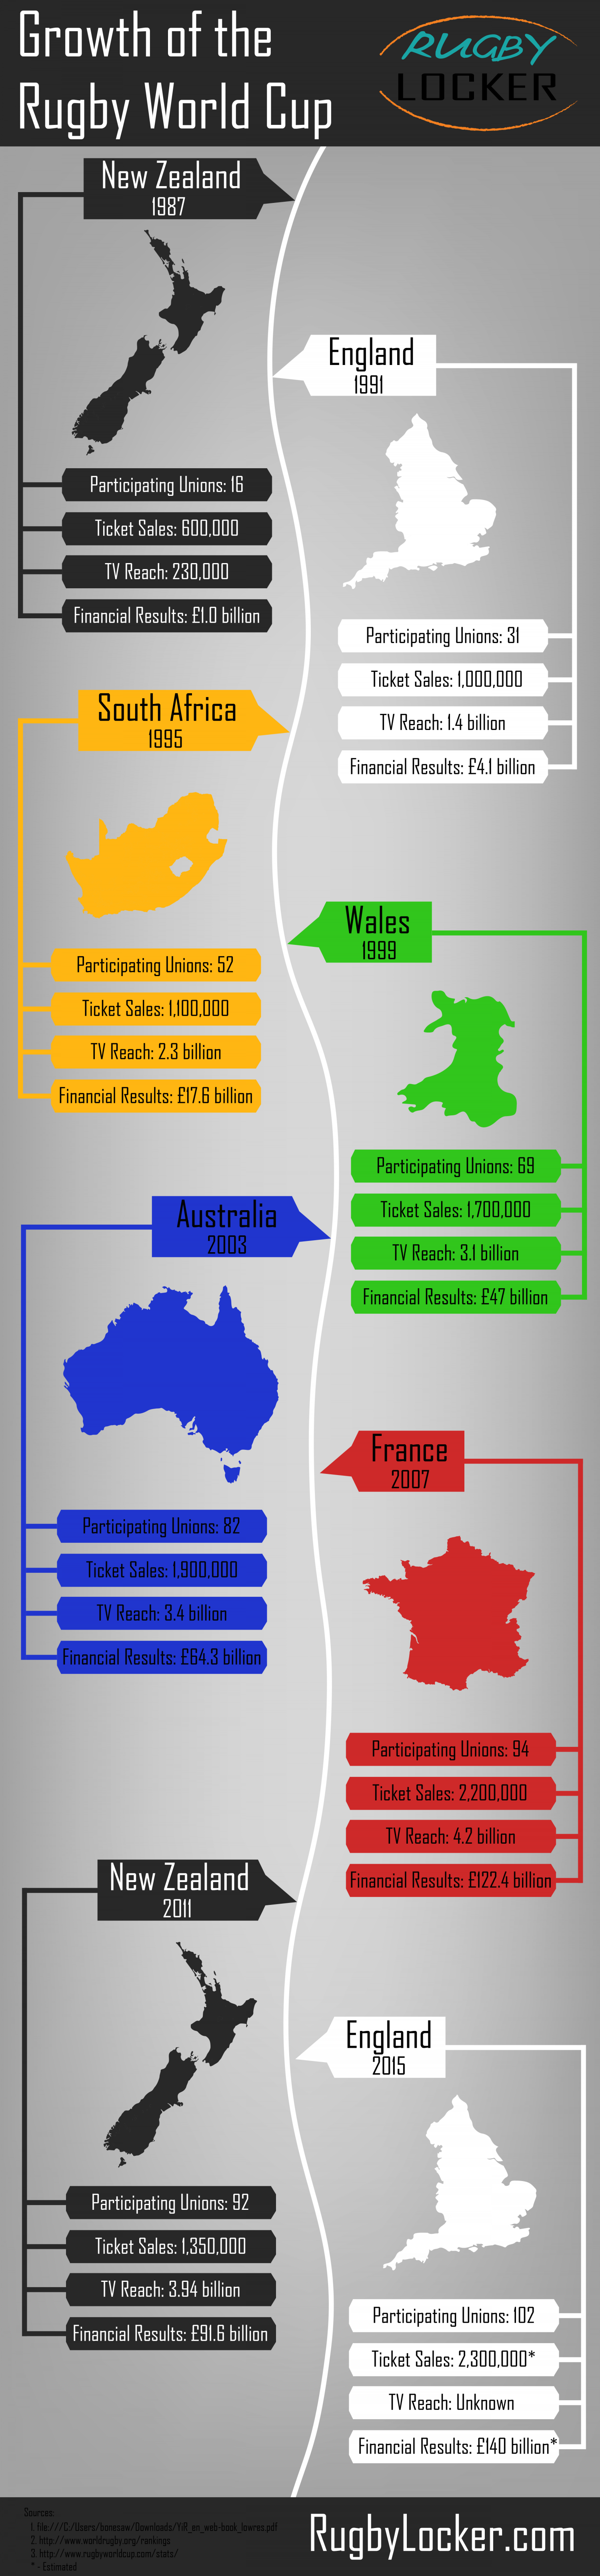 Growth of the Rugby World Cup Infographic